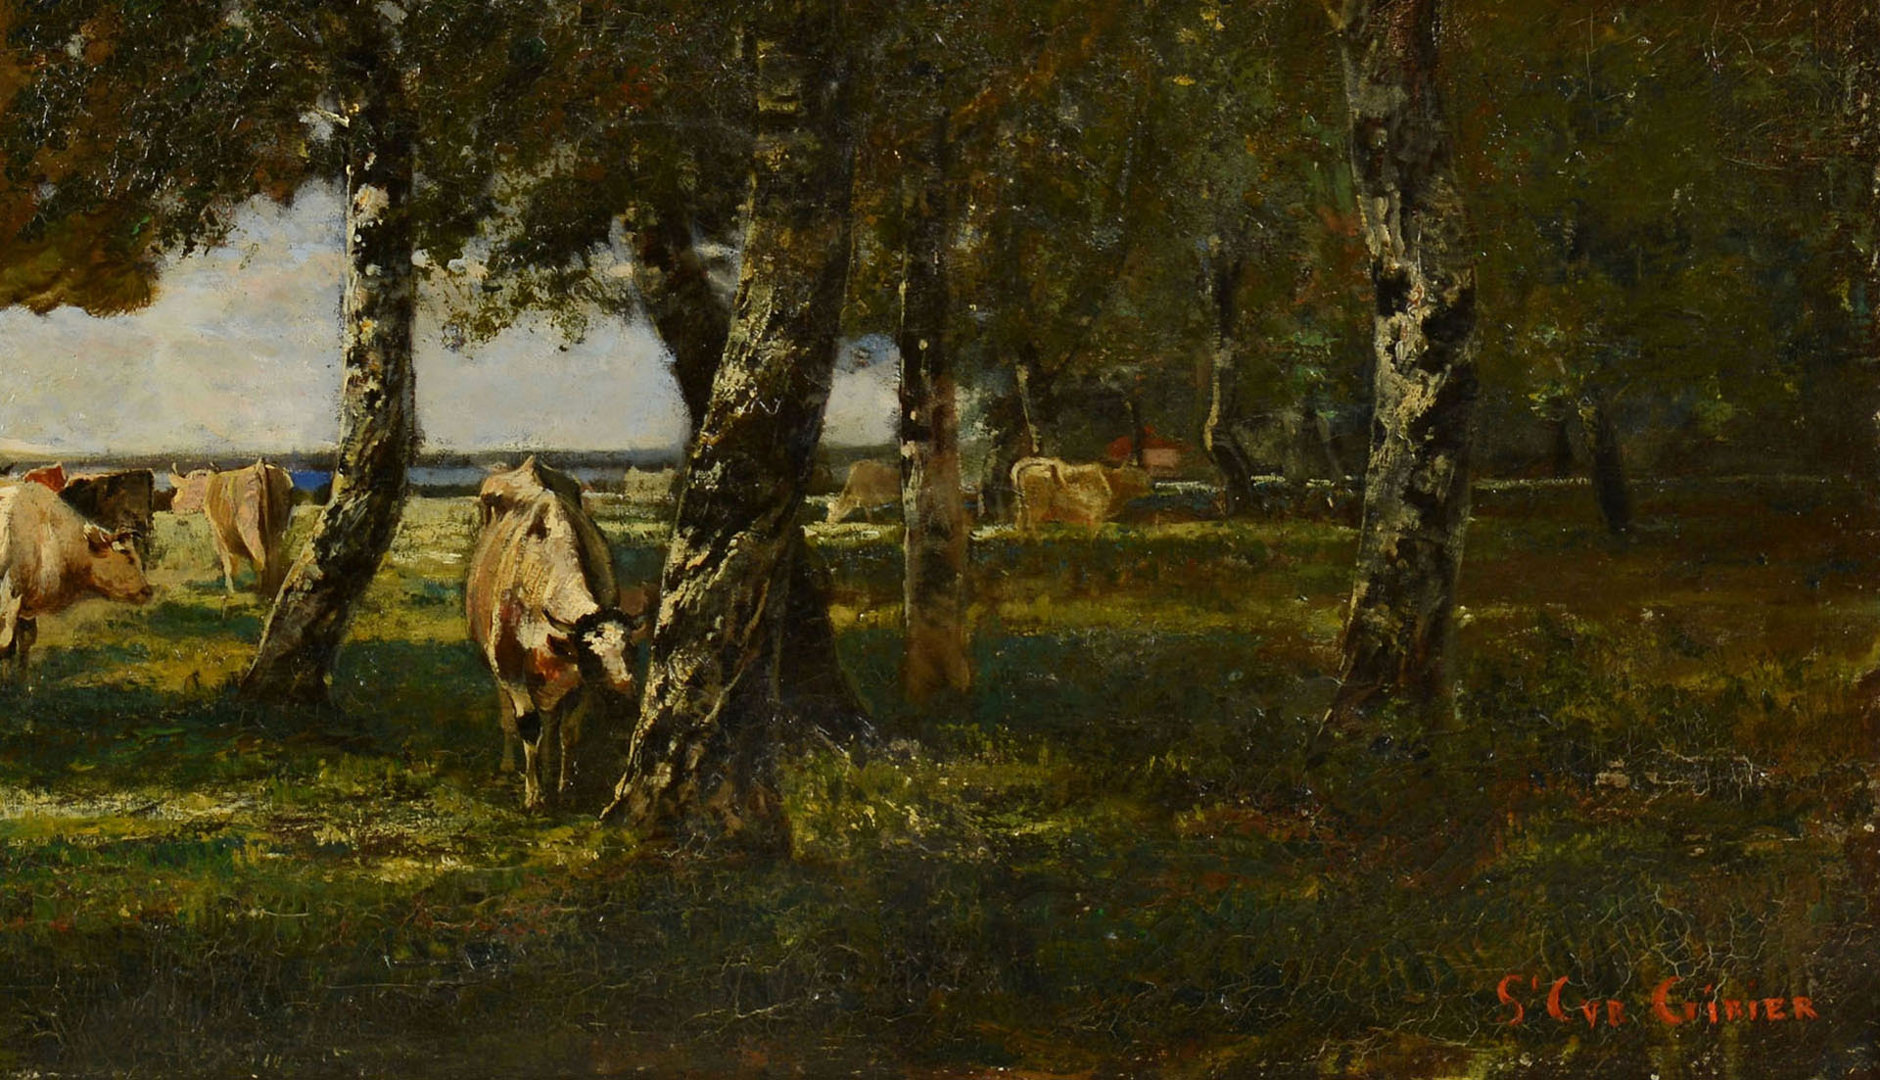 Lot 191: Jean AimŽ St. Cyr-Girier o/c, landscape with cows